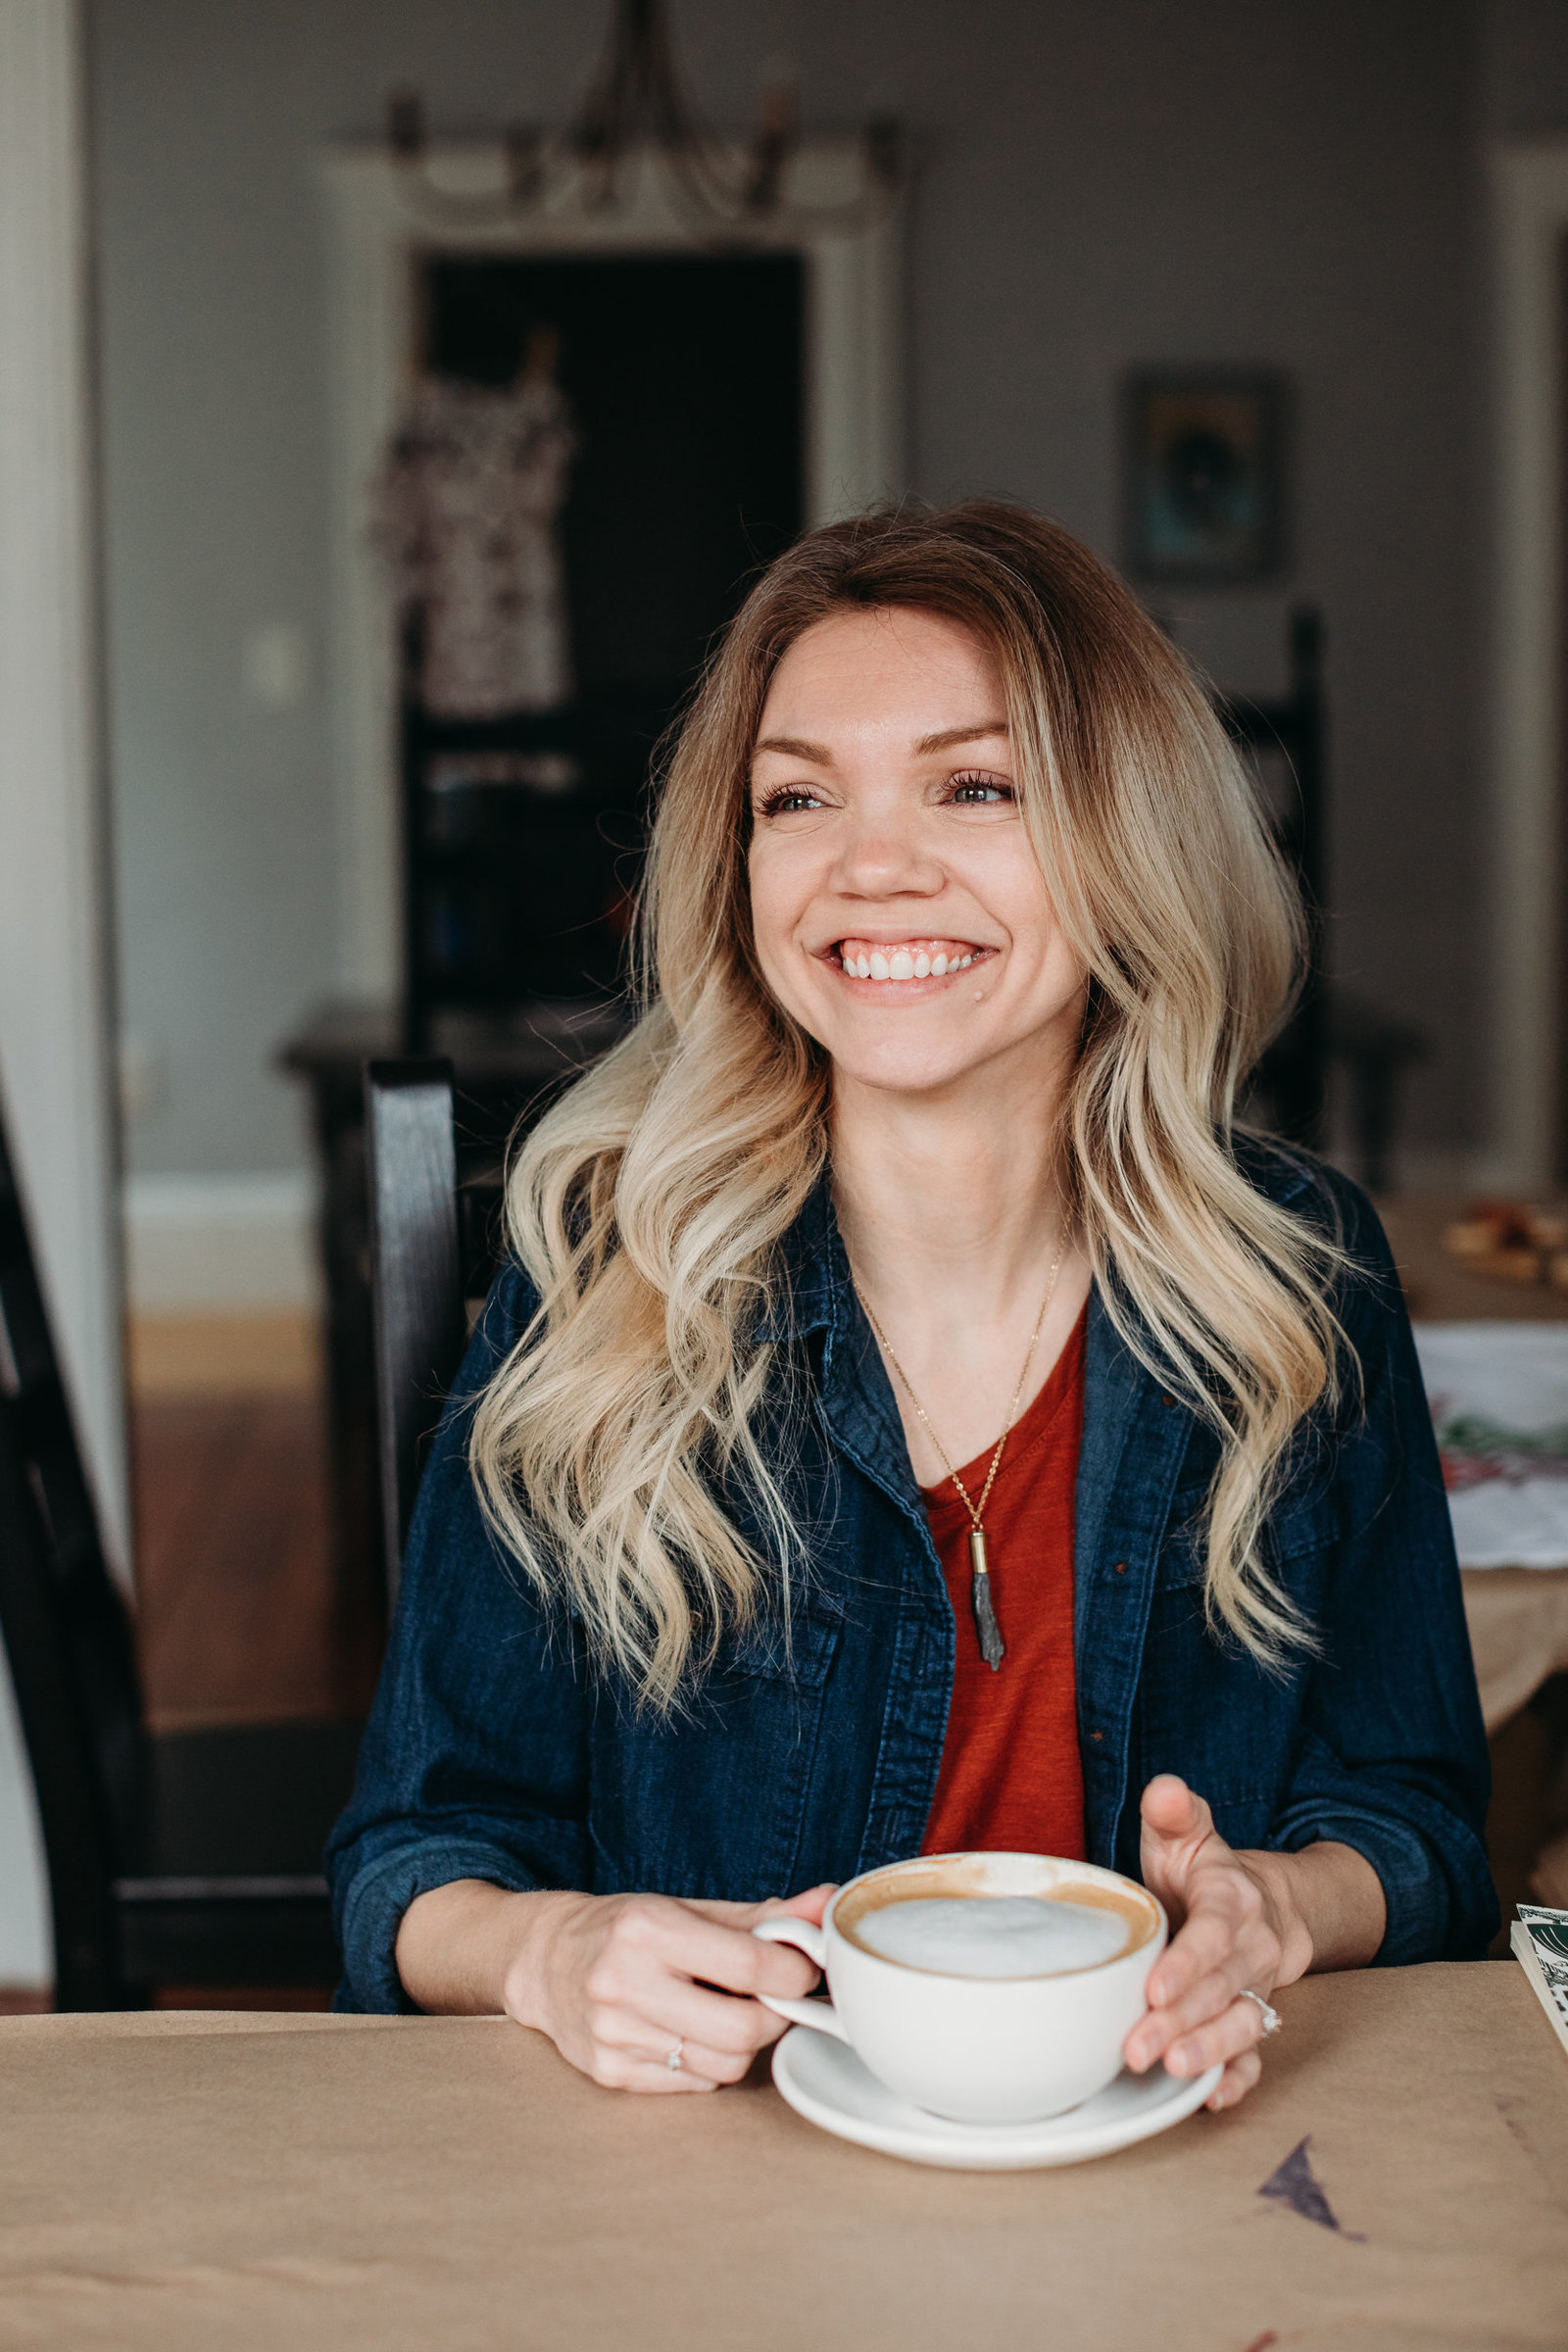 blonde woman drinks a latte and smiles for headshot images in boston